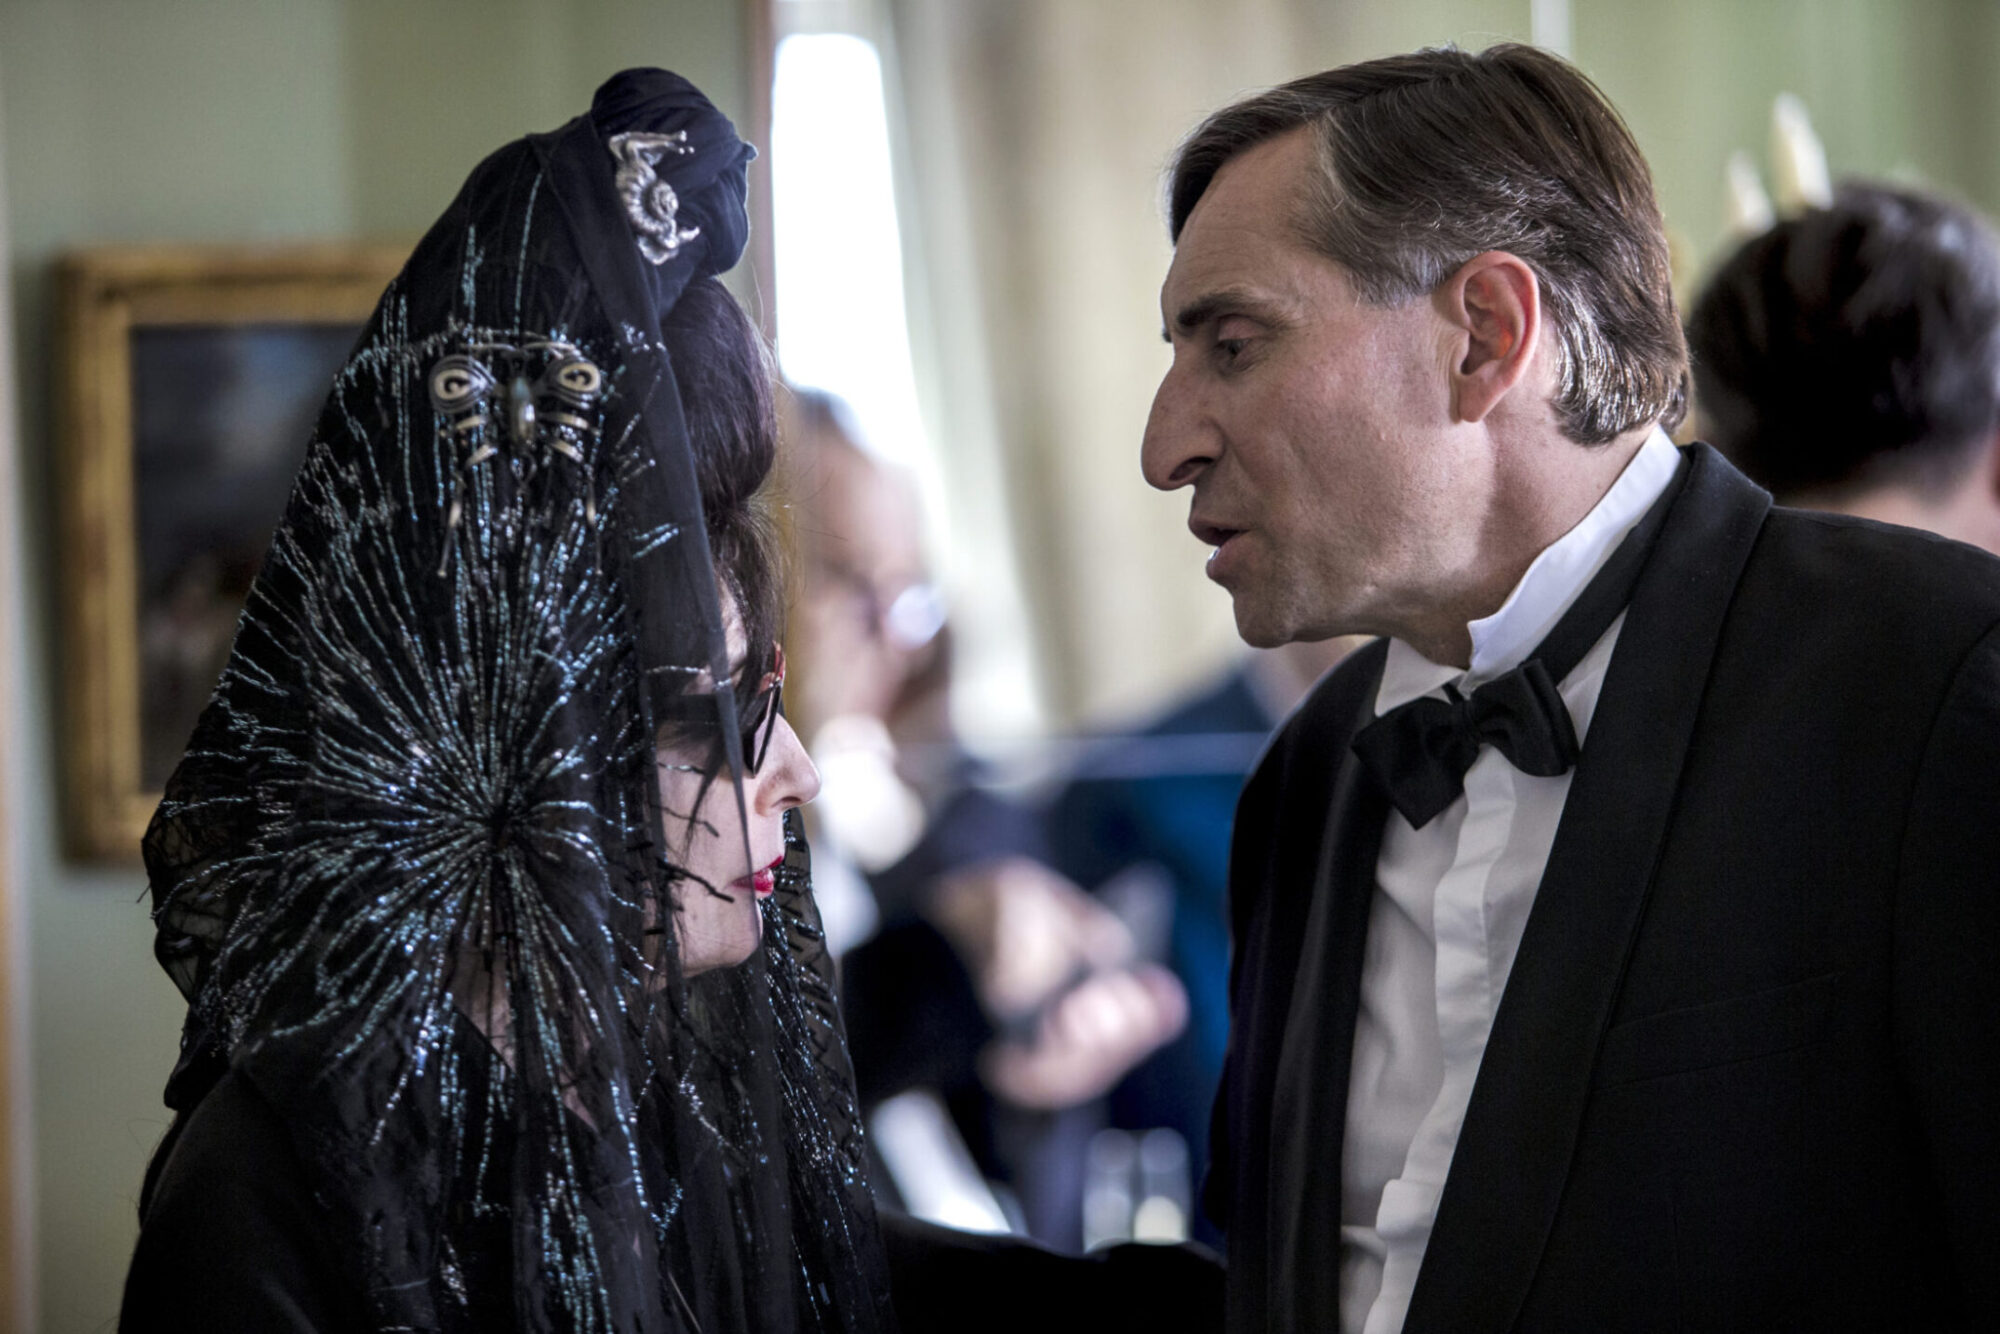 Diane Pernet, Baron Marc Osmont d'Amilly about Misia and Coco Chanel / Photo: Neha Ganeriwal